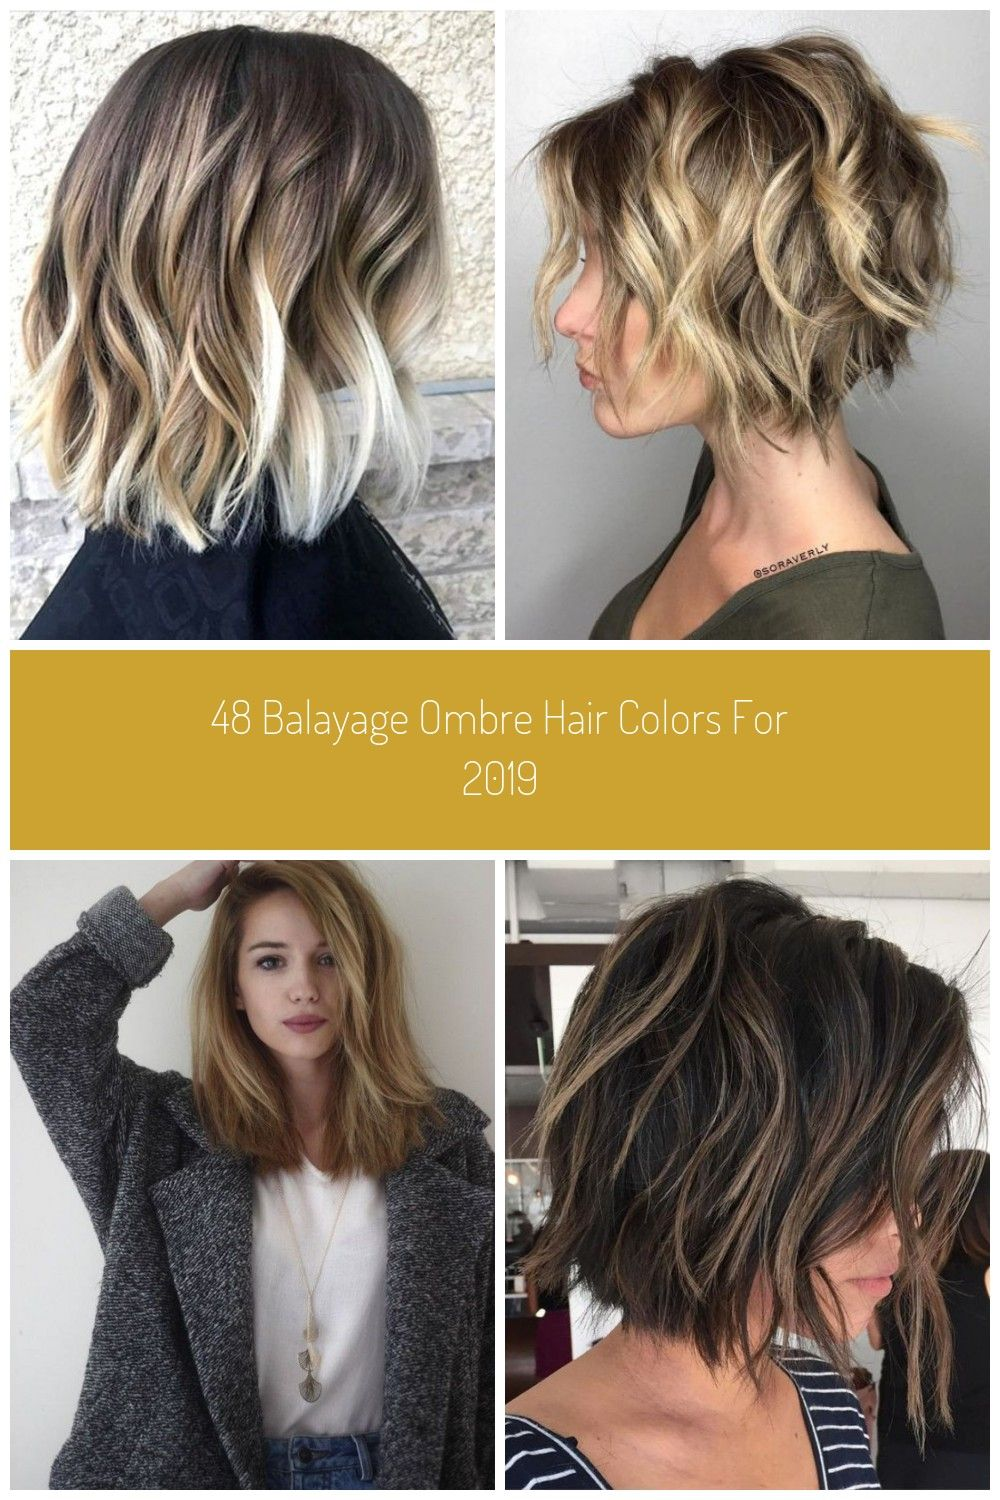 Beach Waves Short Hair #bob corto balayage 48 Balayage Ombre Hair Colors  For 2019 Koees Blog in 2020 | Ombre hair color, How to curl short hair,  Ombre hair